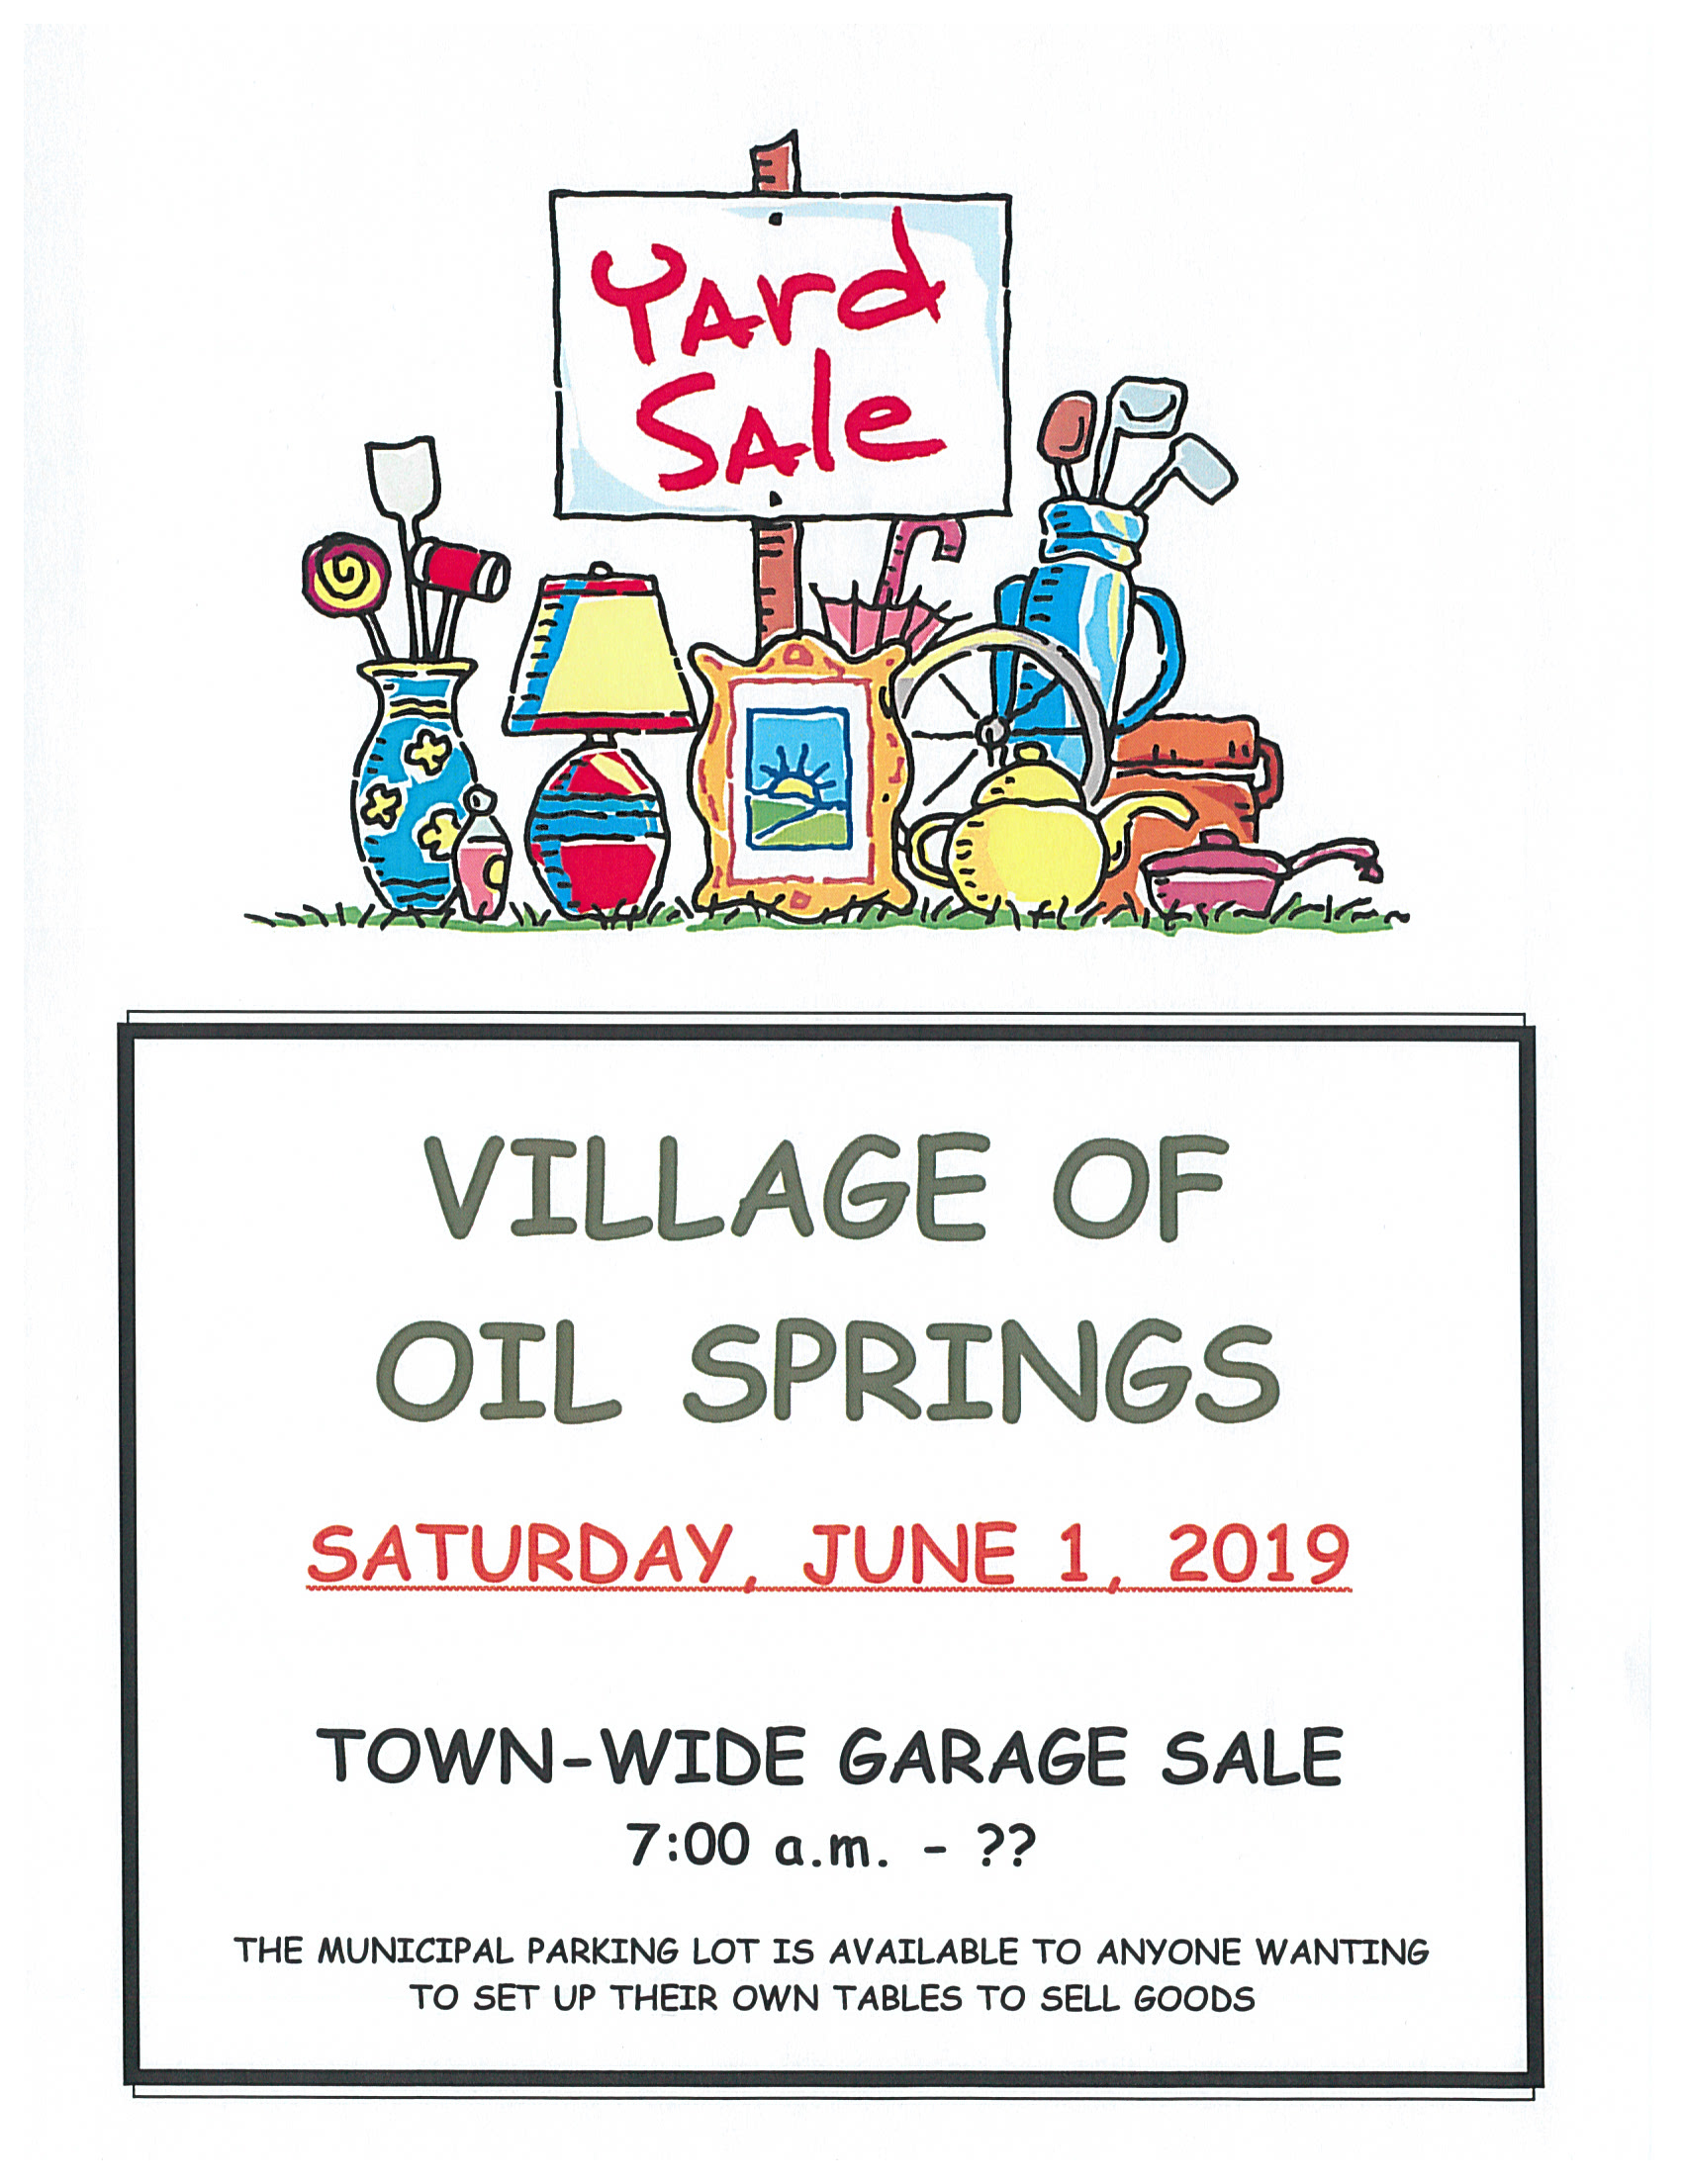 Town-wide Garage sales